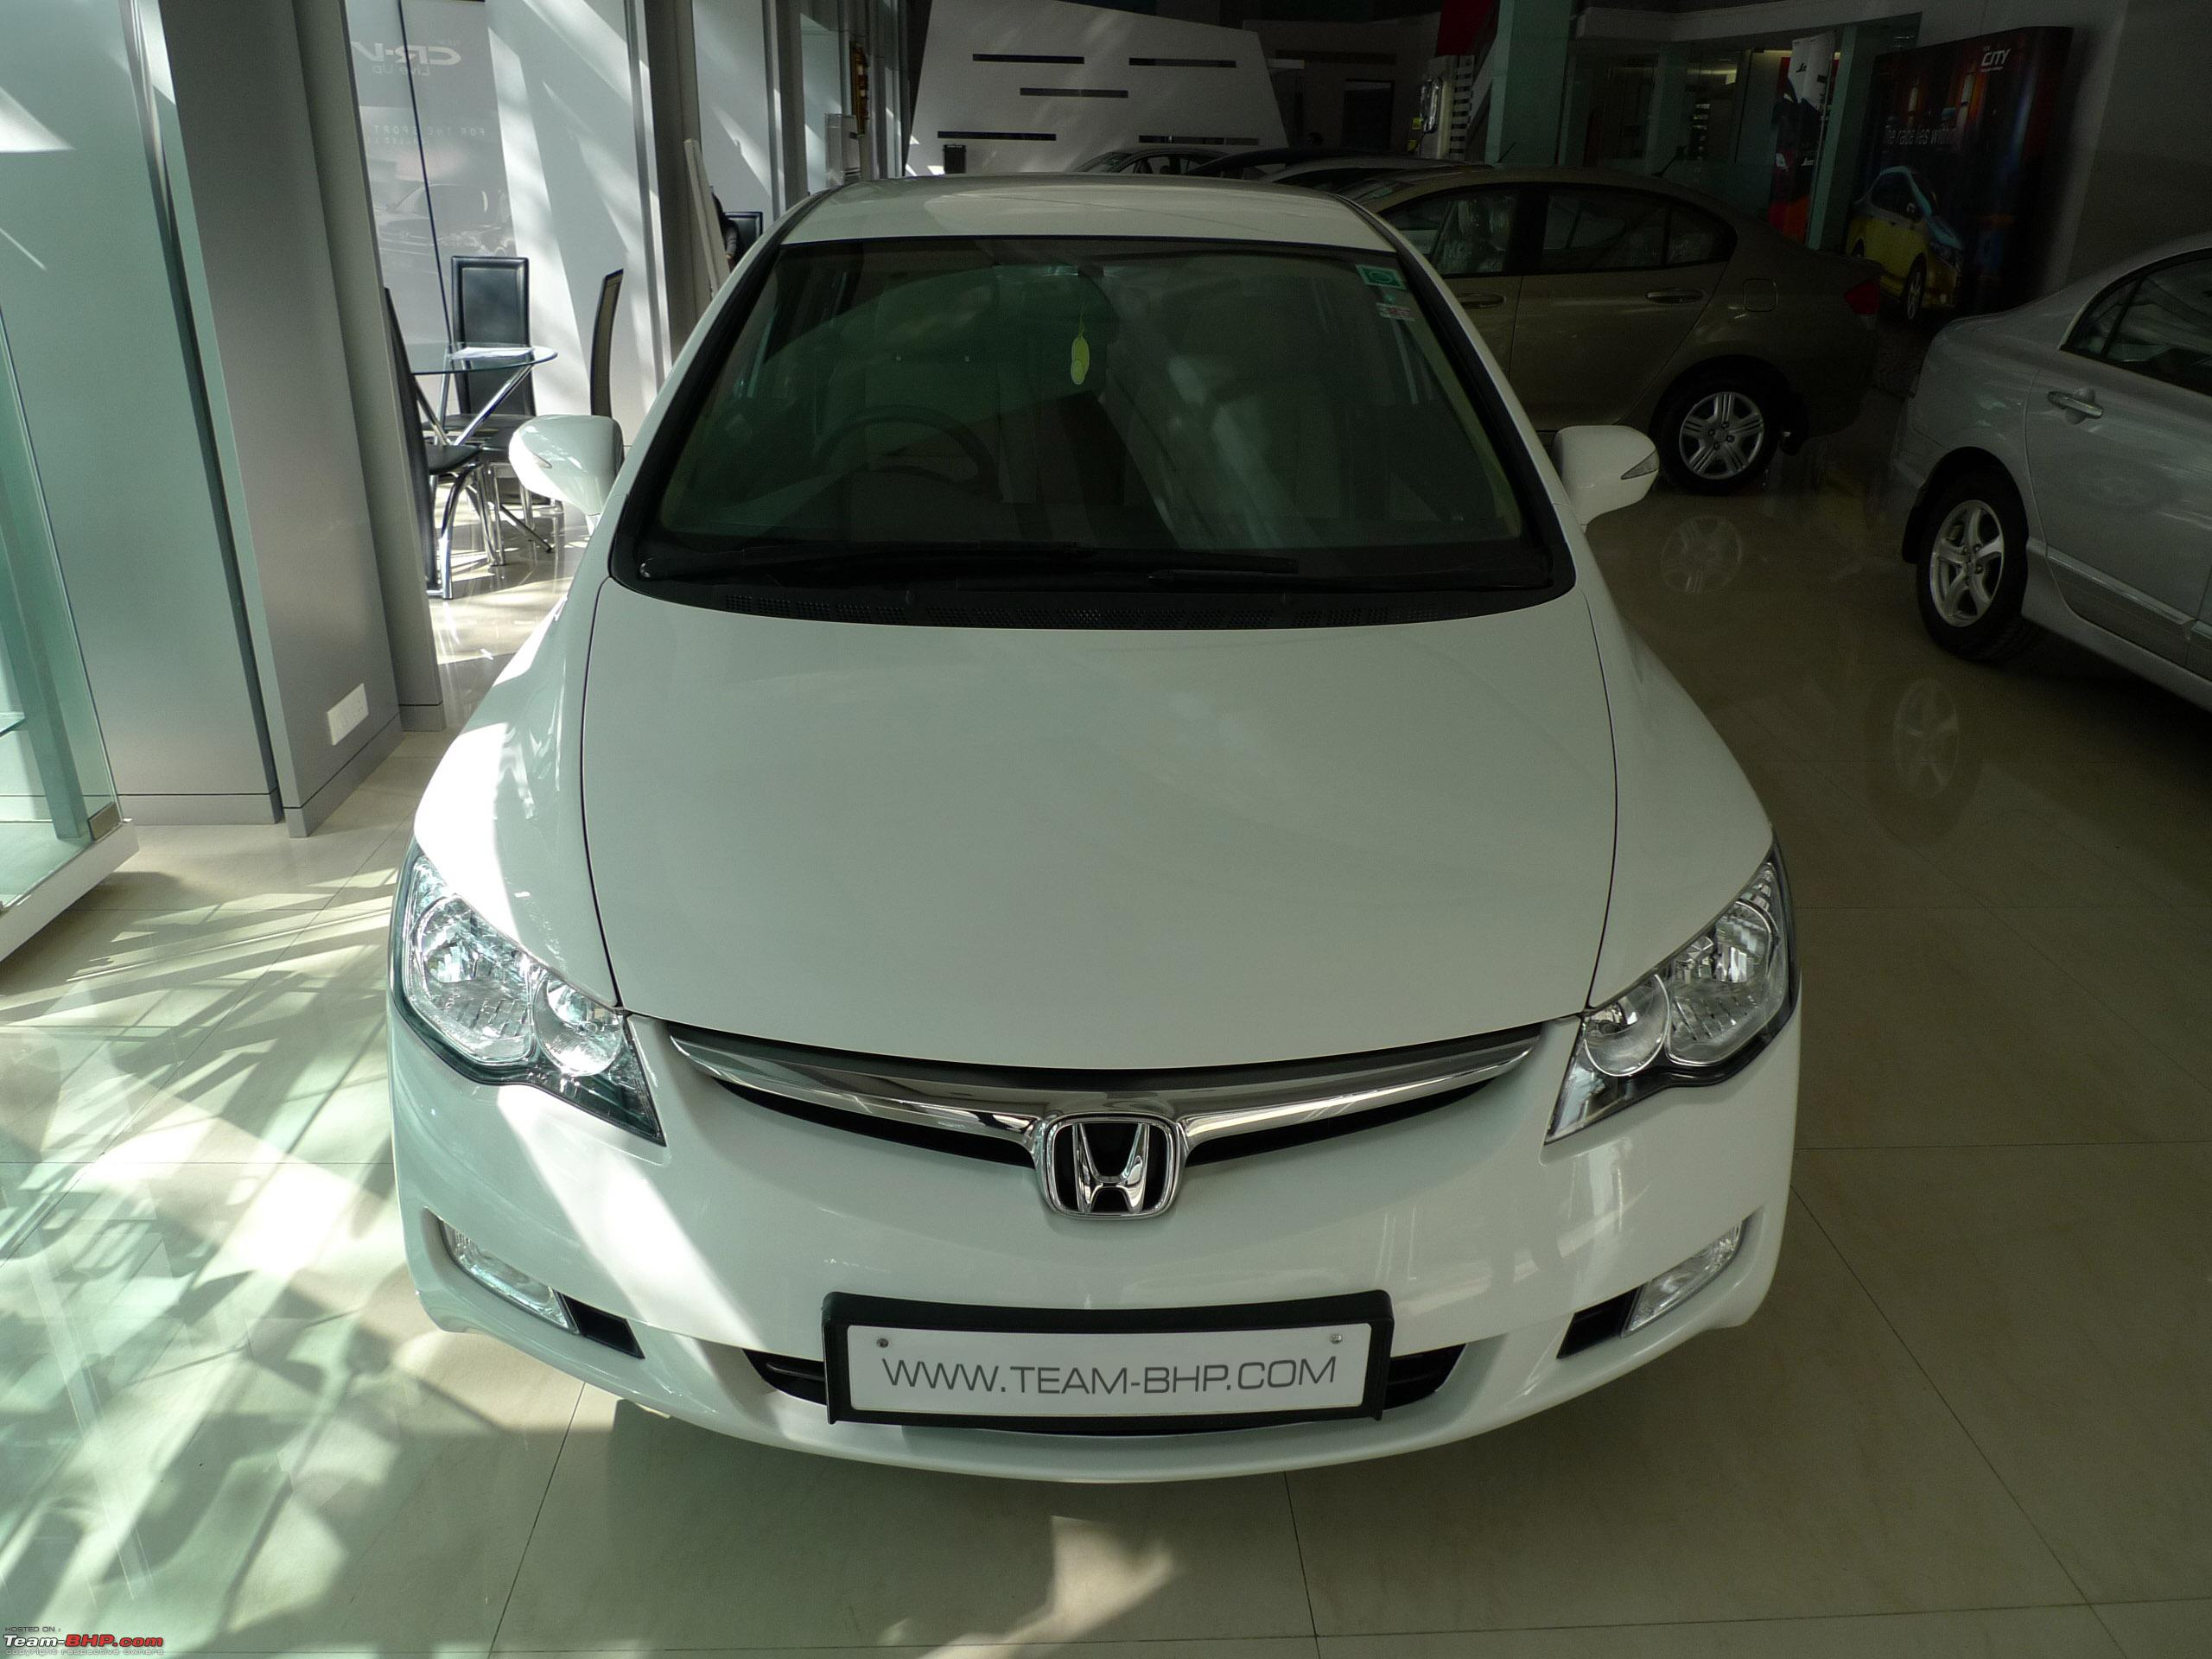 location vehicle honda technical for img other civic comments options listings gpmotors specifications features sale overview